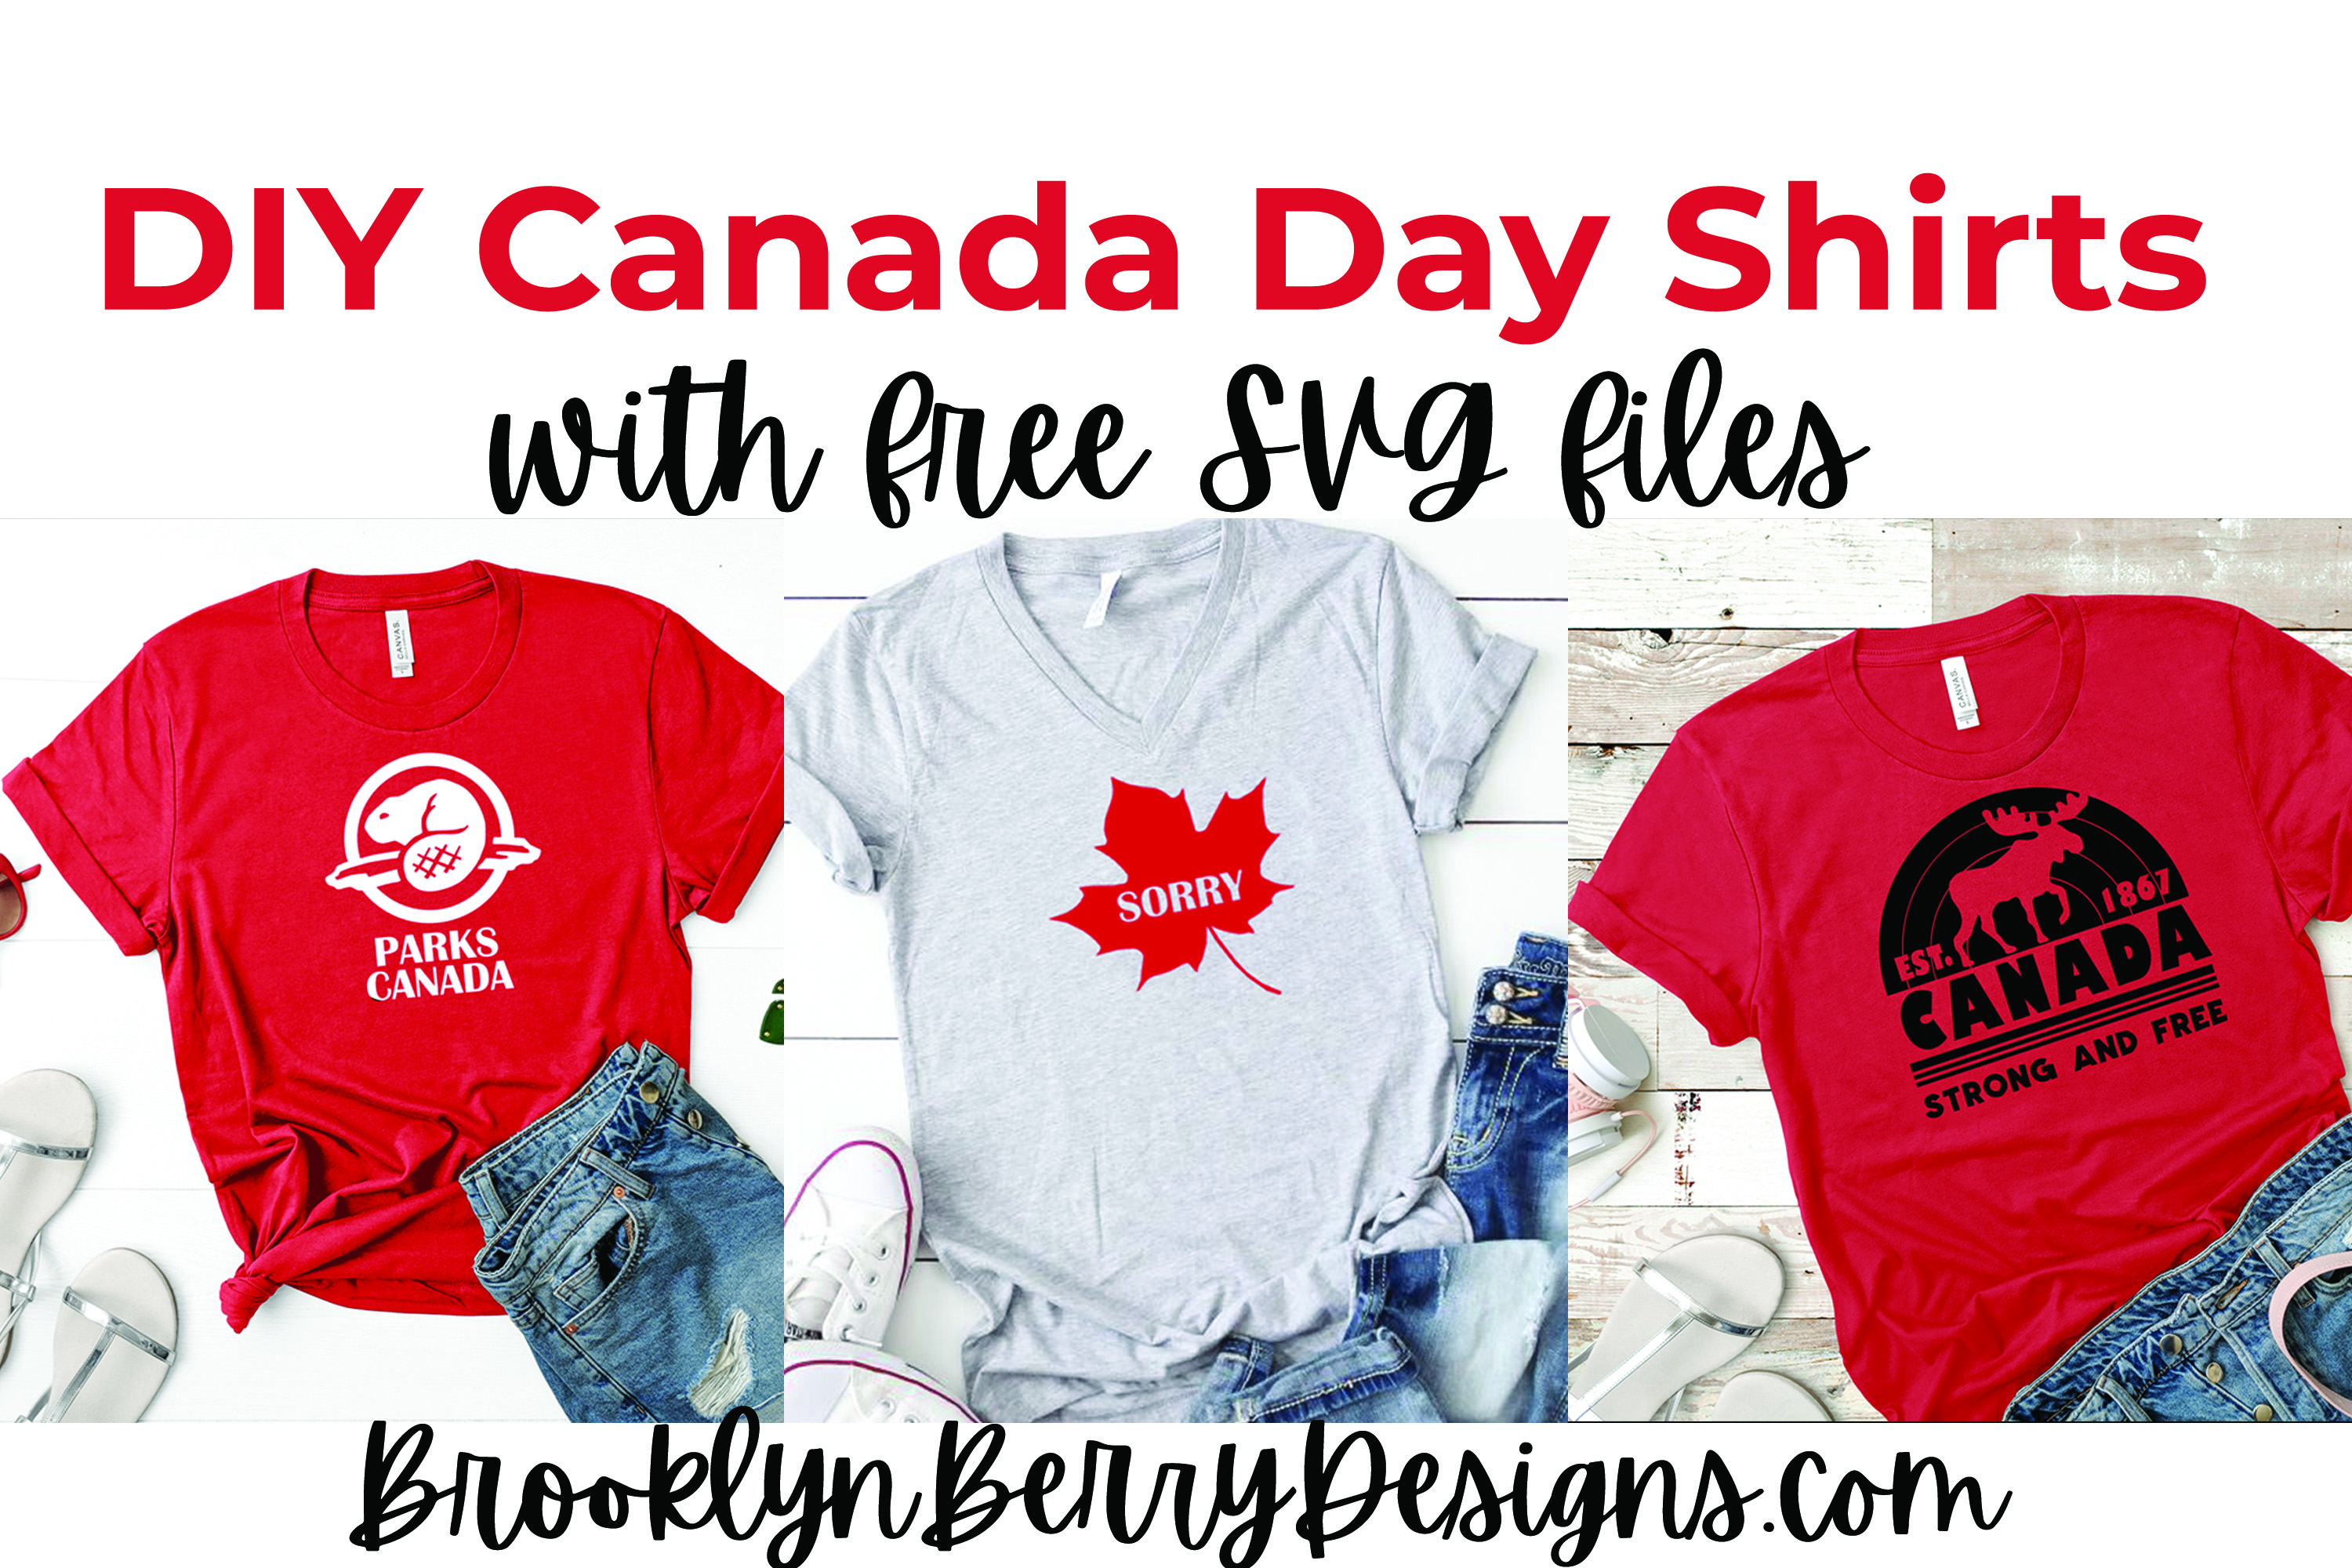 Make your own DIY Canada Day Shirts with these 3 free svg files from Brooklyn Berry Designs